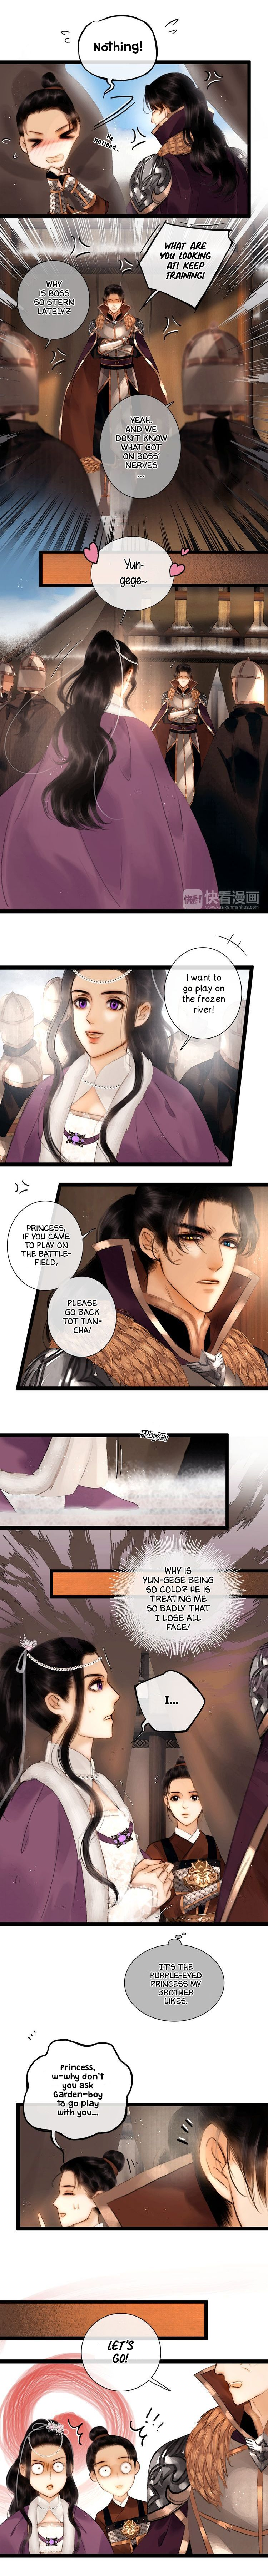 Imperial Edict - chapter 19 - #3